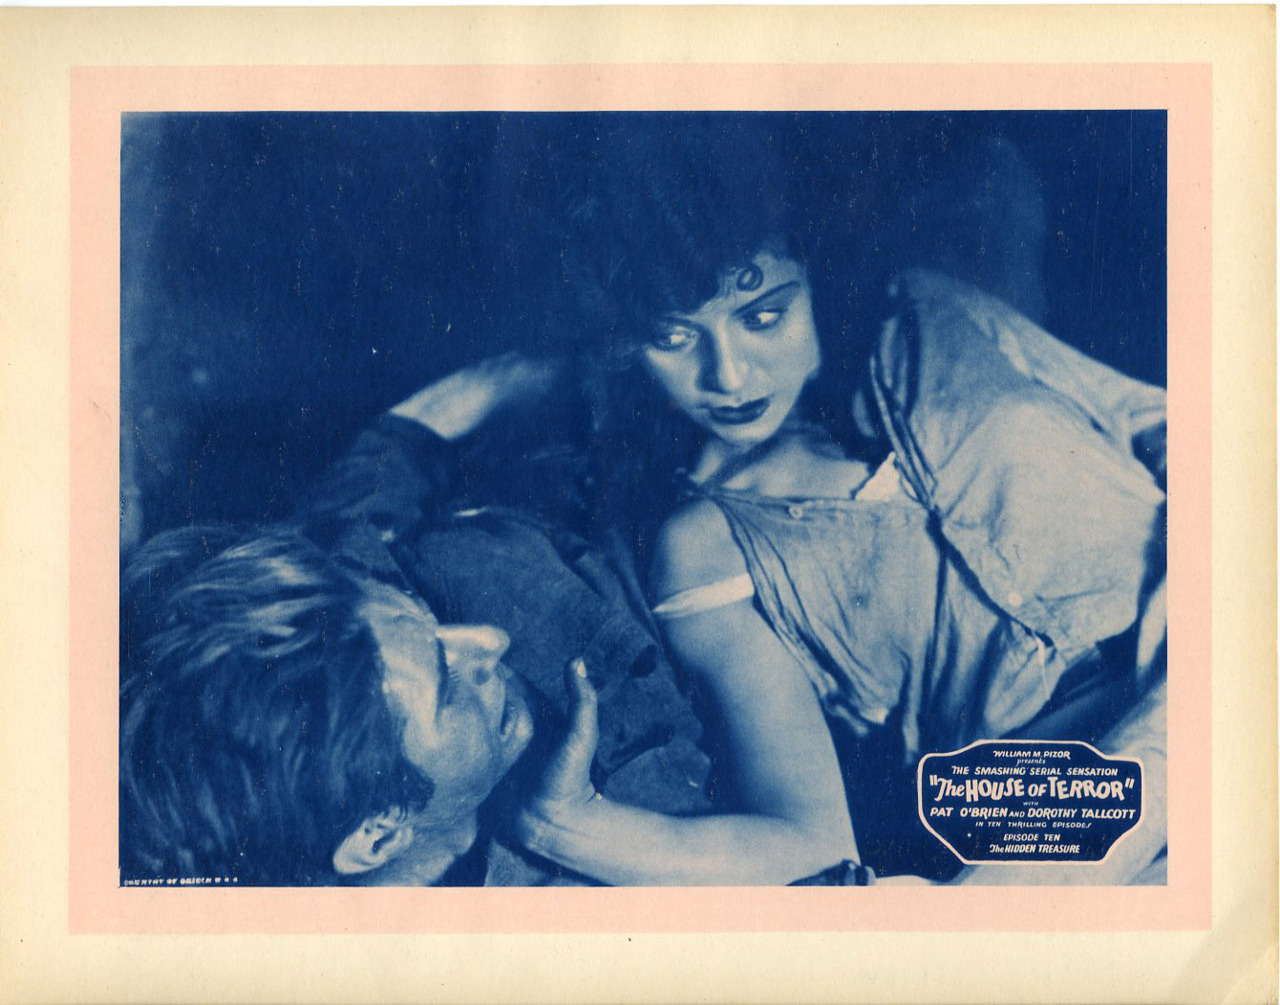 The House of Terror, Episode 10: The Hidden Treasure, US lobby card. 1928